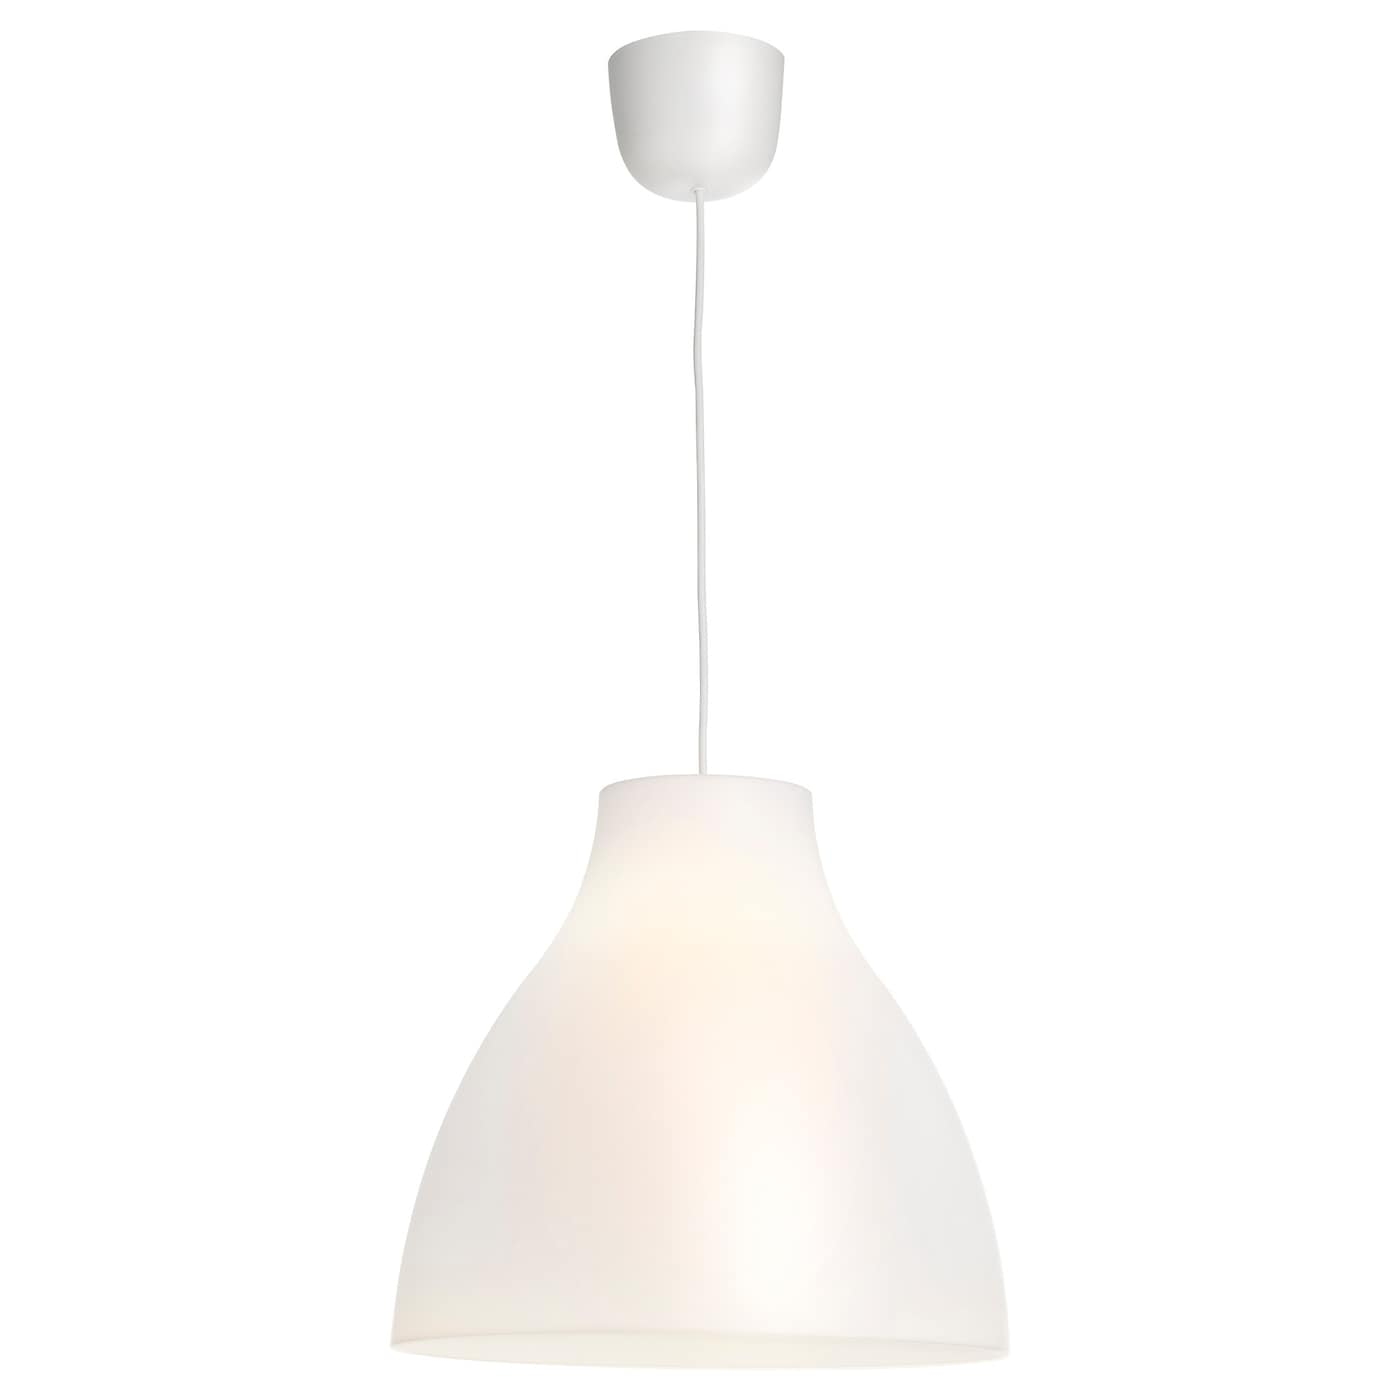 Ceiling lights led ceiling lights ikea - Lampe pour tableau ikea ...